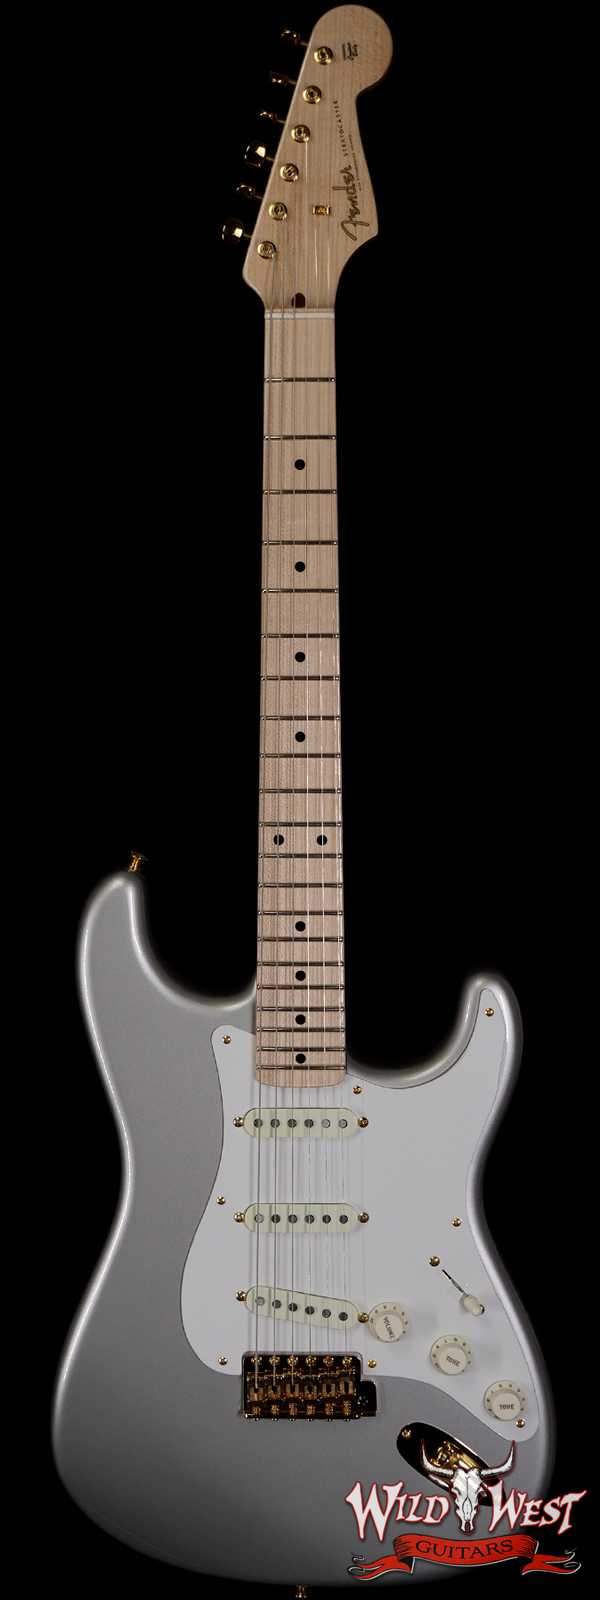 Fender Custom Shop 1956 Stratocaster NOS Ash Body Quatersawn Maple Neck Hand-Wound Pickups Inca Silver